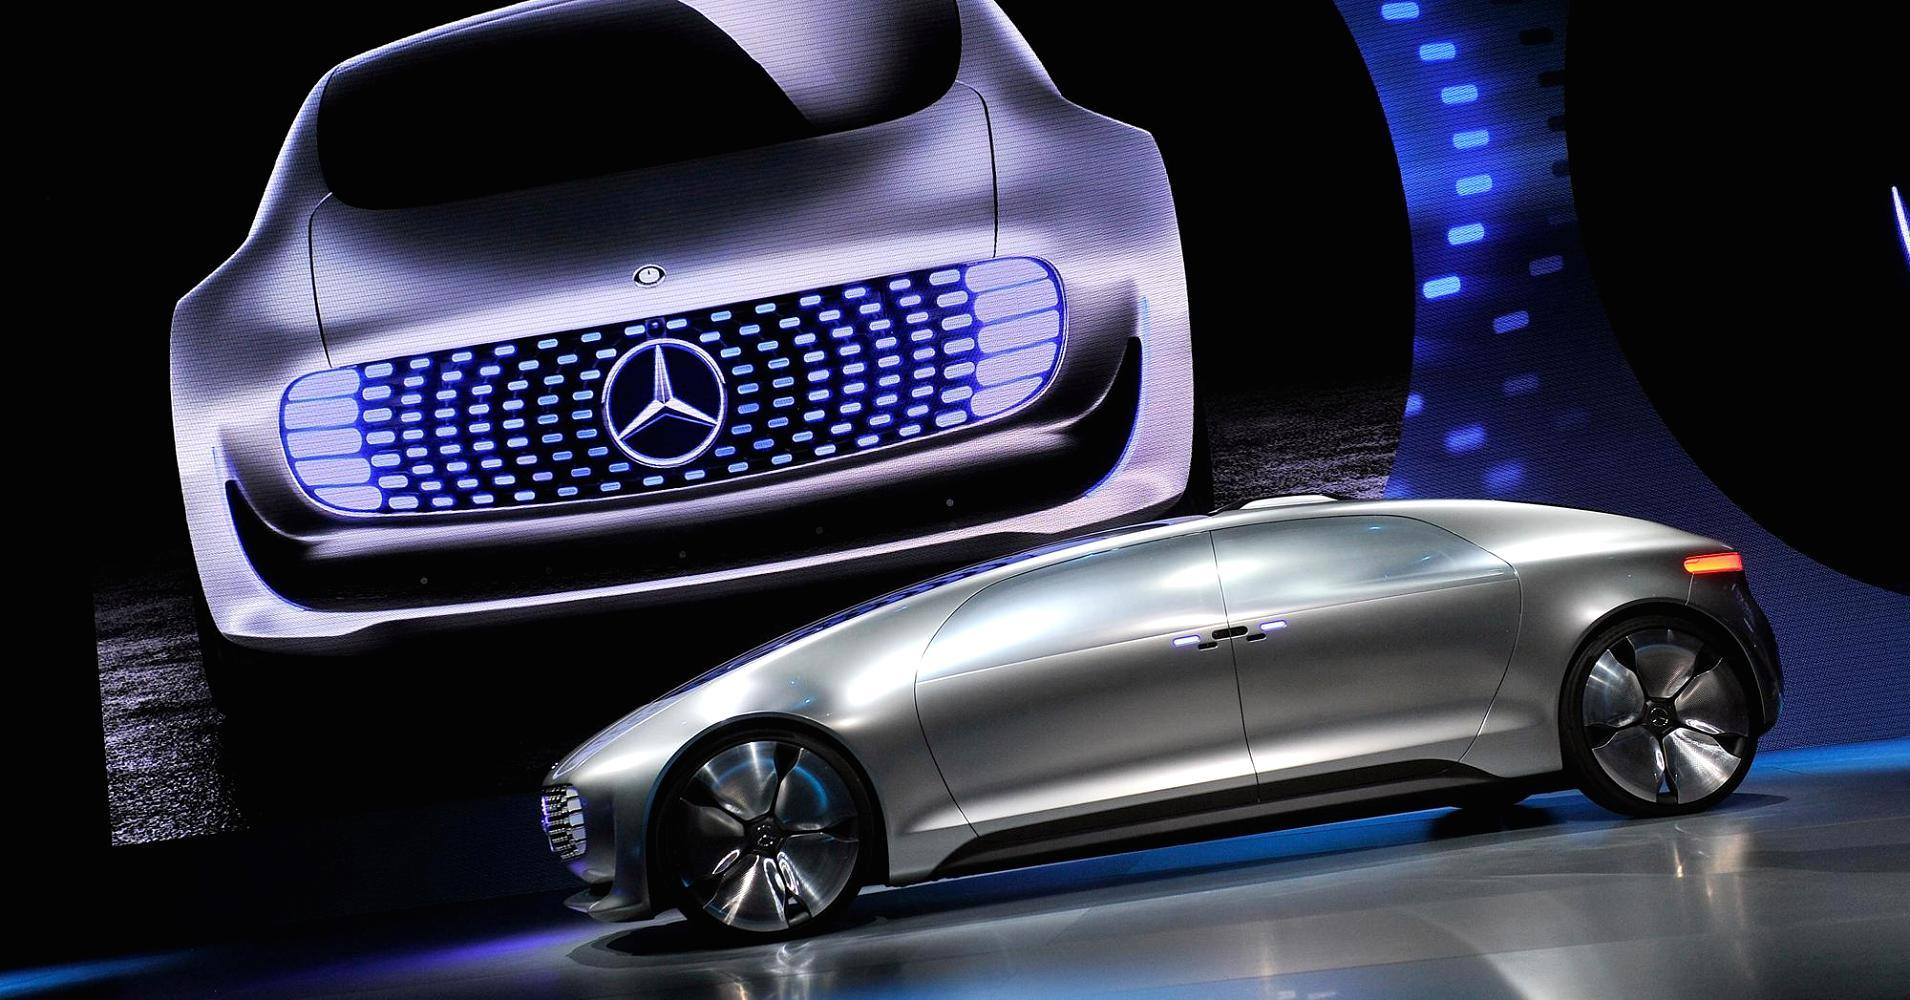 Autonomous-drive cars further off than most expect